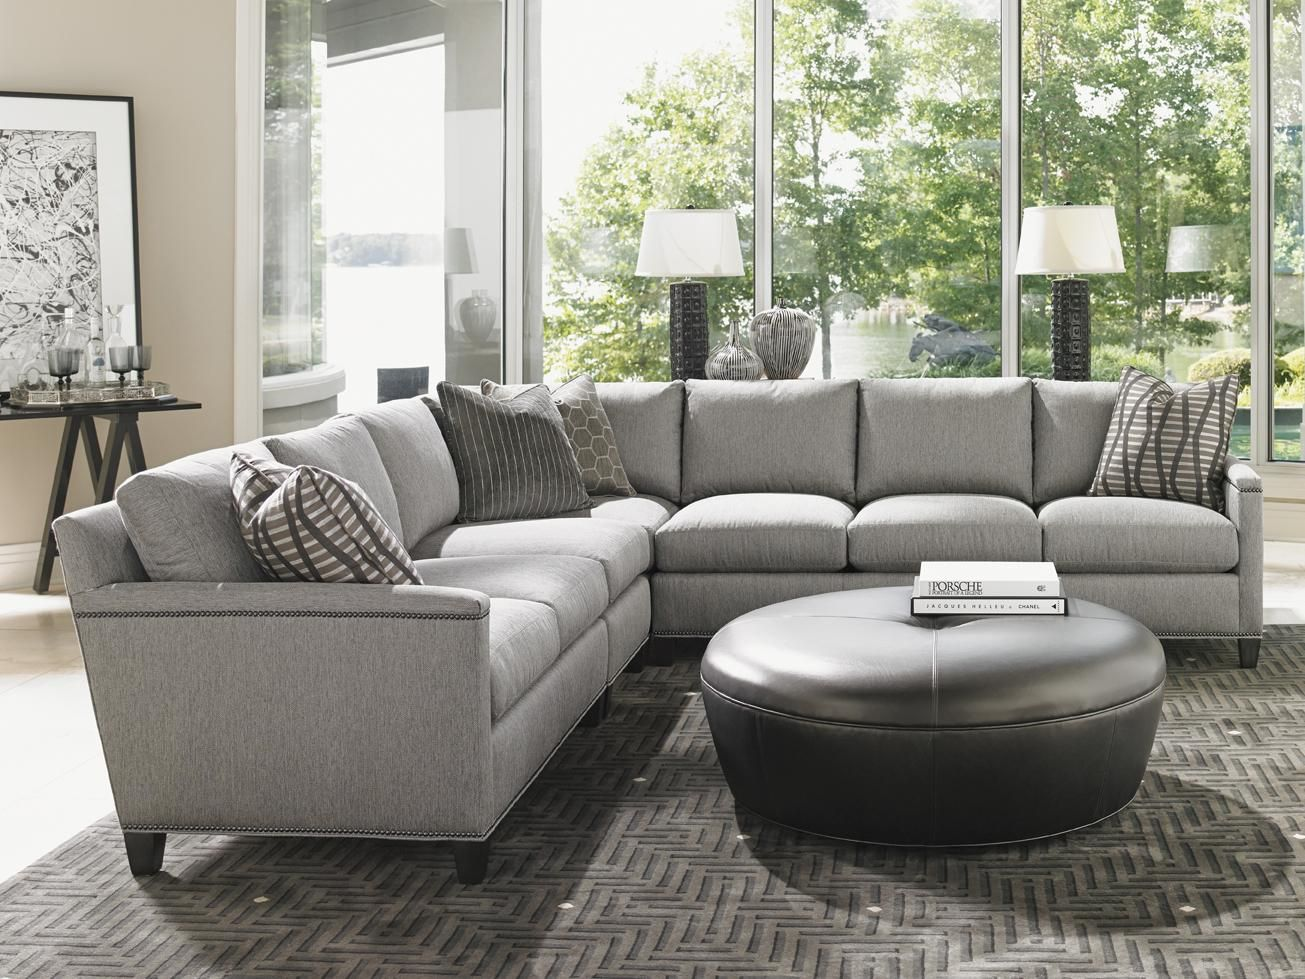 Carrera strada four piece sectional sofa with nailhead trim by lexington at baers furniture